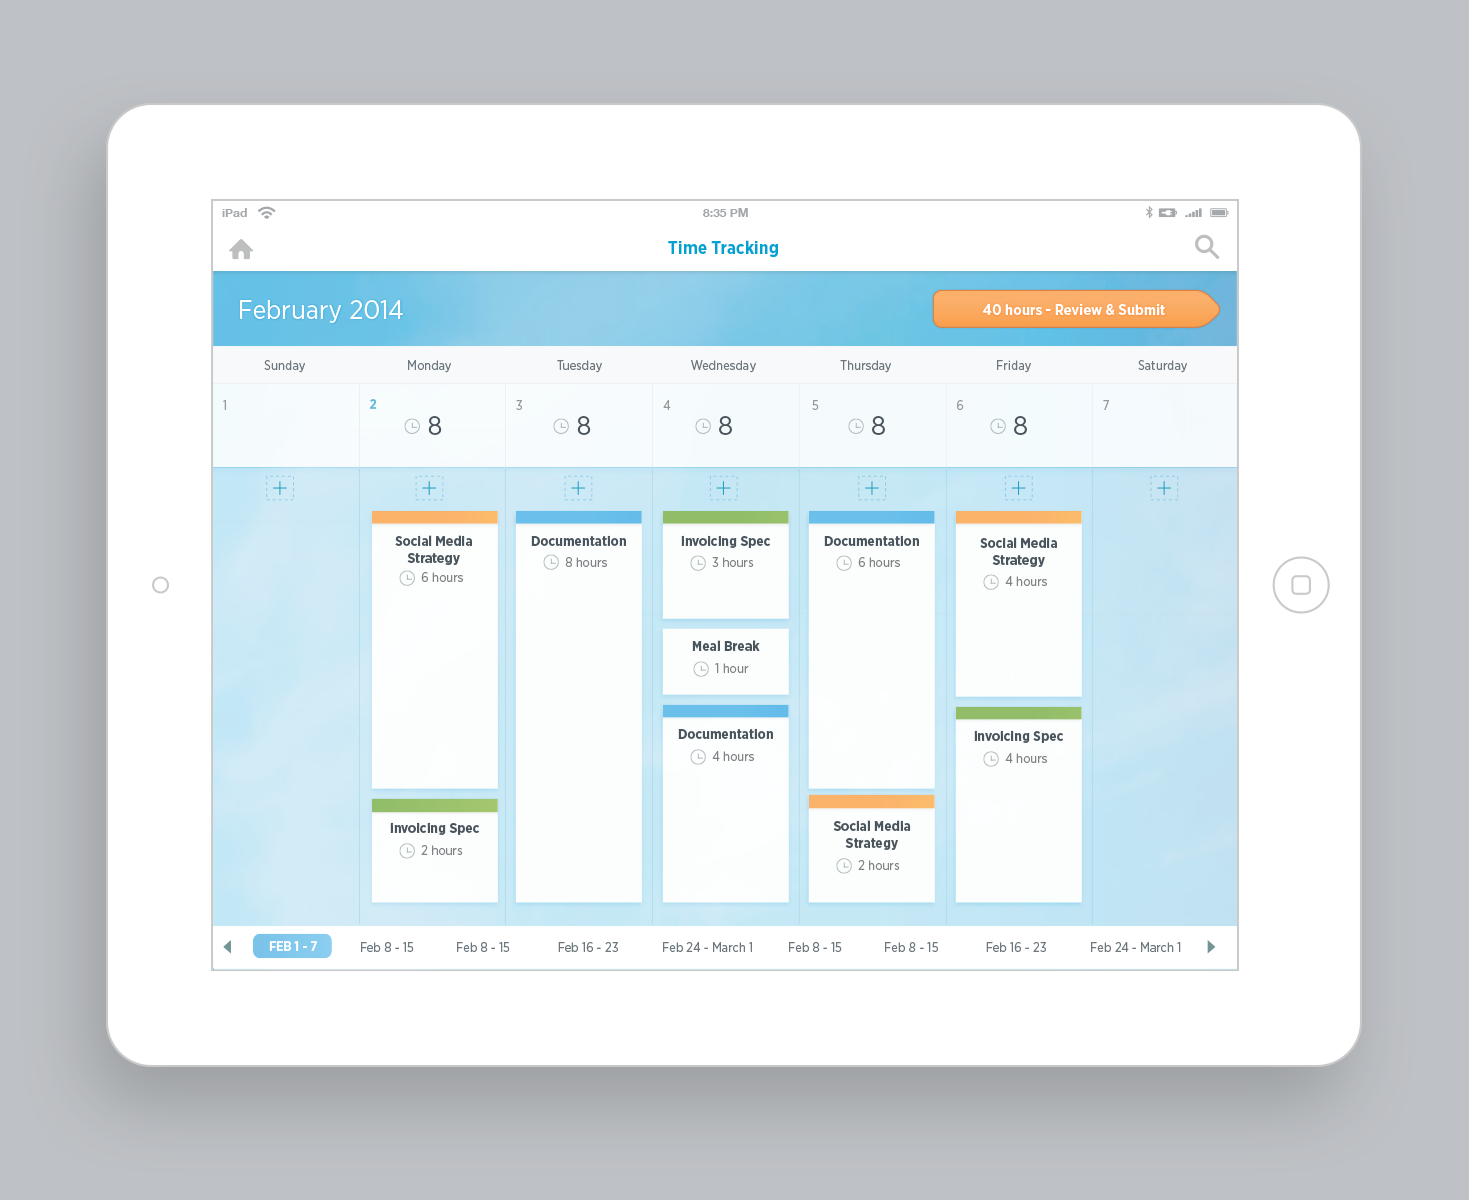 workday_ipad_timetracking.png